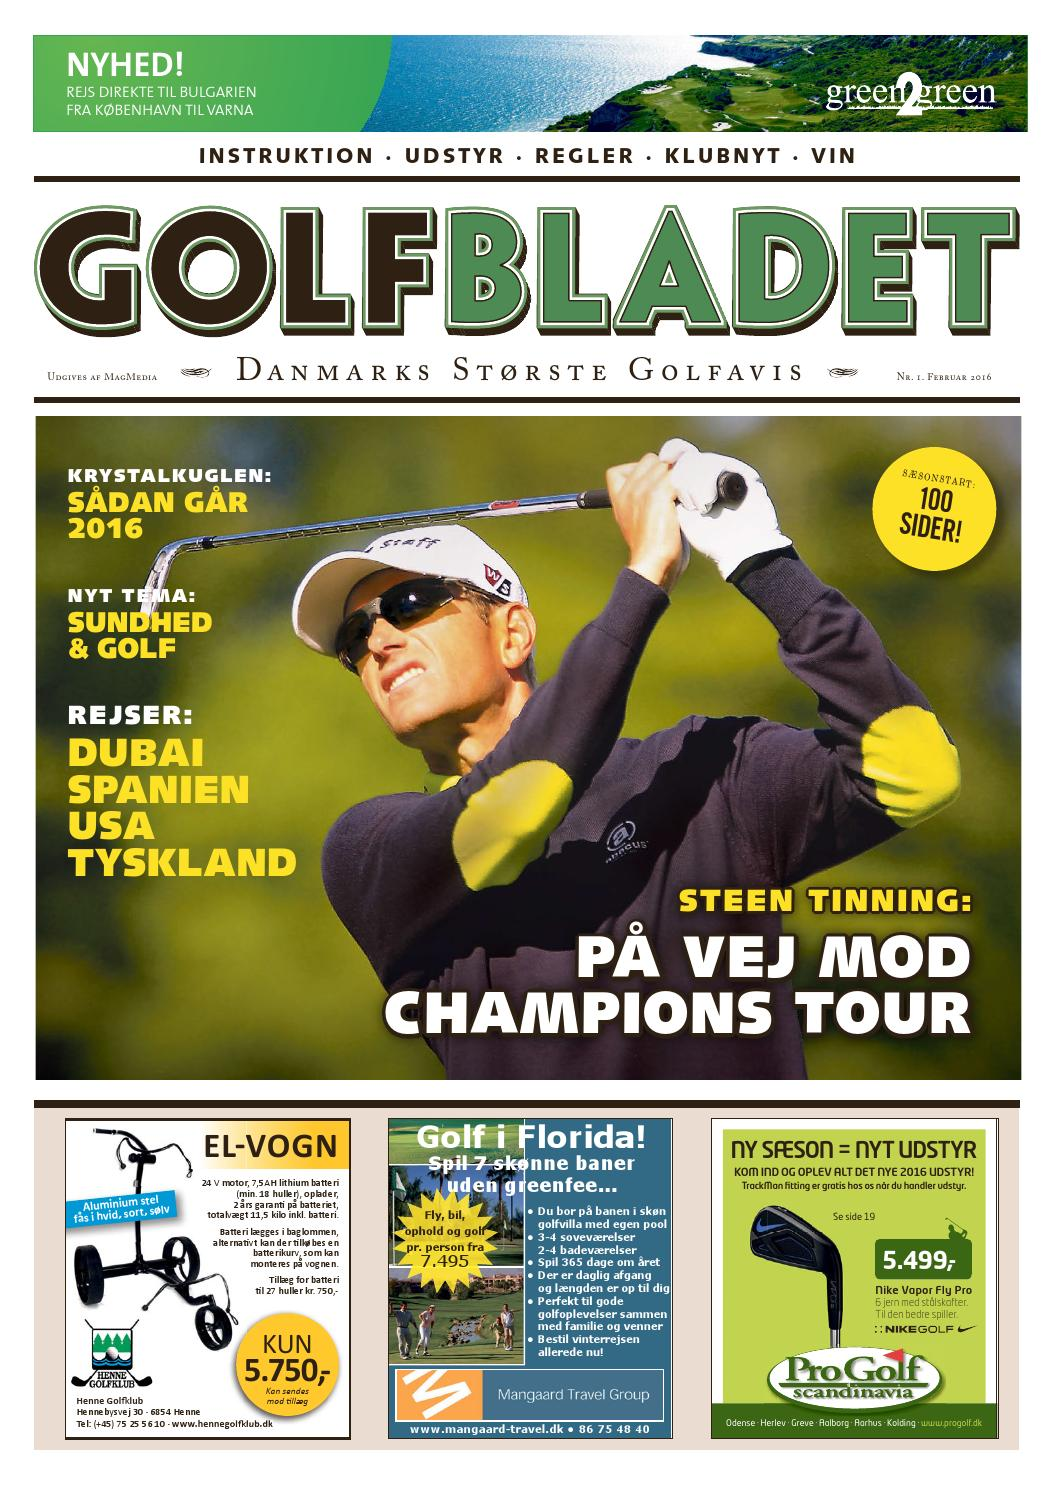 Golfbladet december 2015 by morten buckhøj   issuu